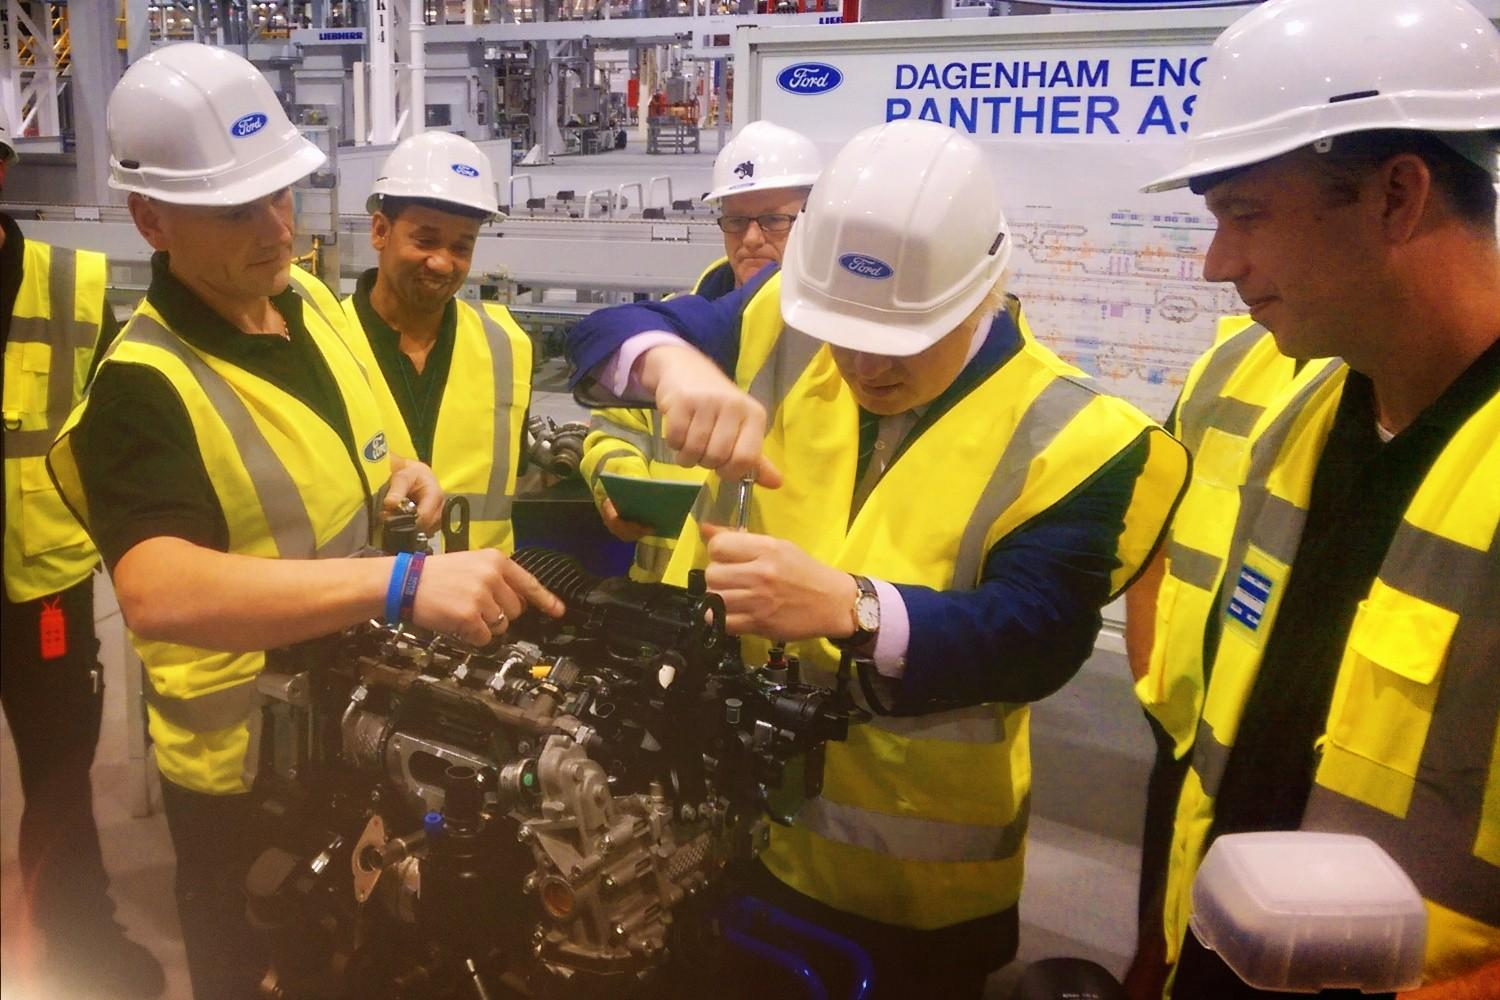 In Dagenham this morning to meet @ford apprentices and help out on the low emission engine assembly line http://t.co/RPXAVpNoAq